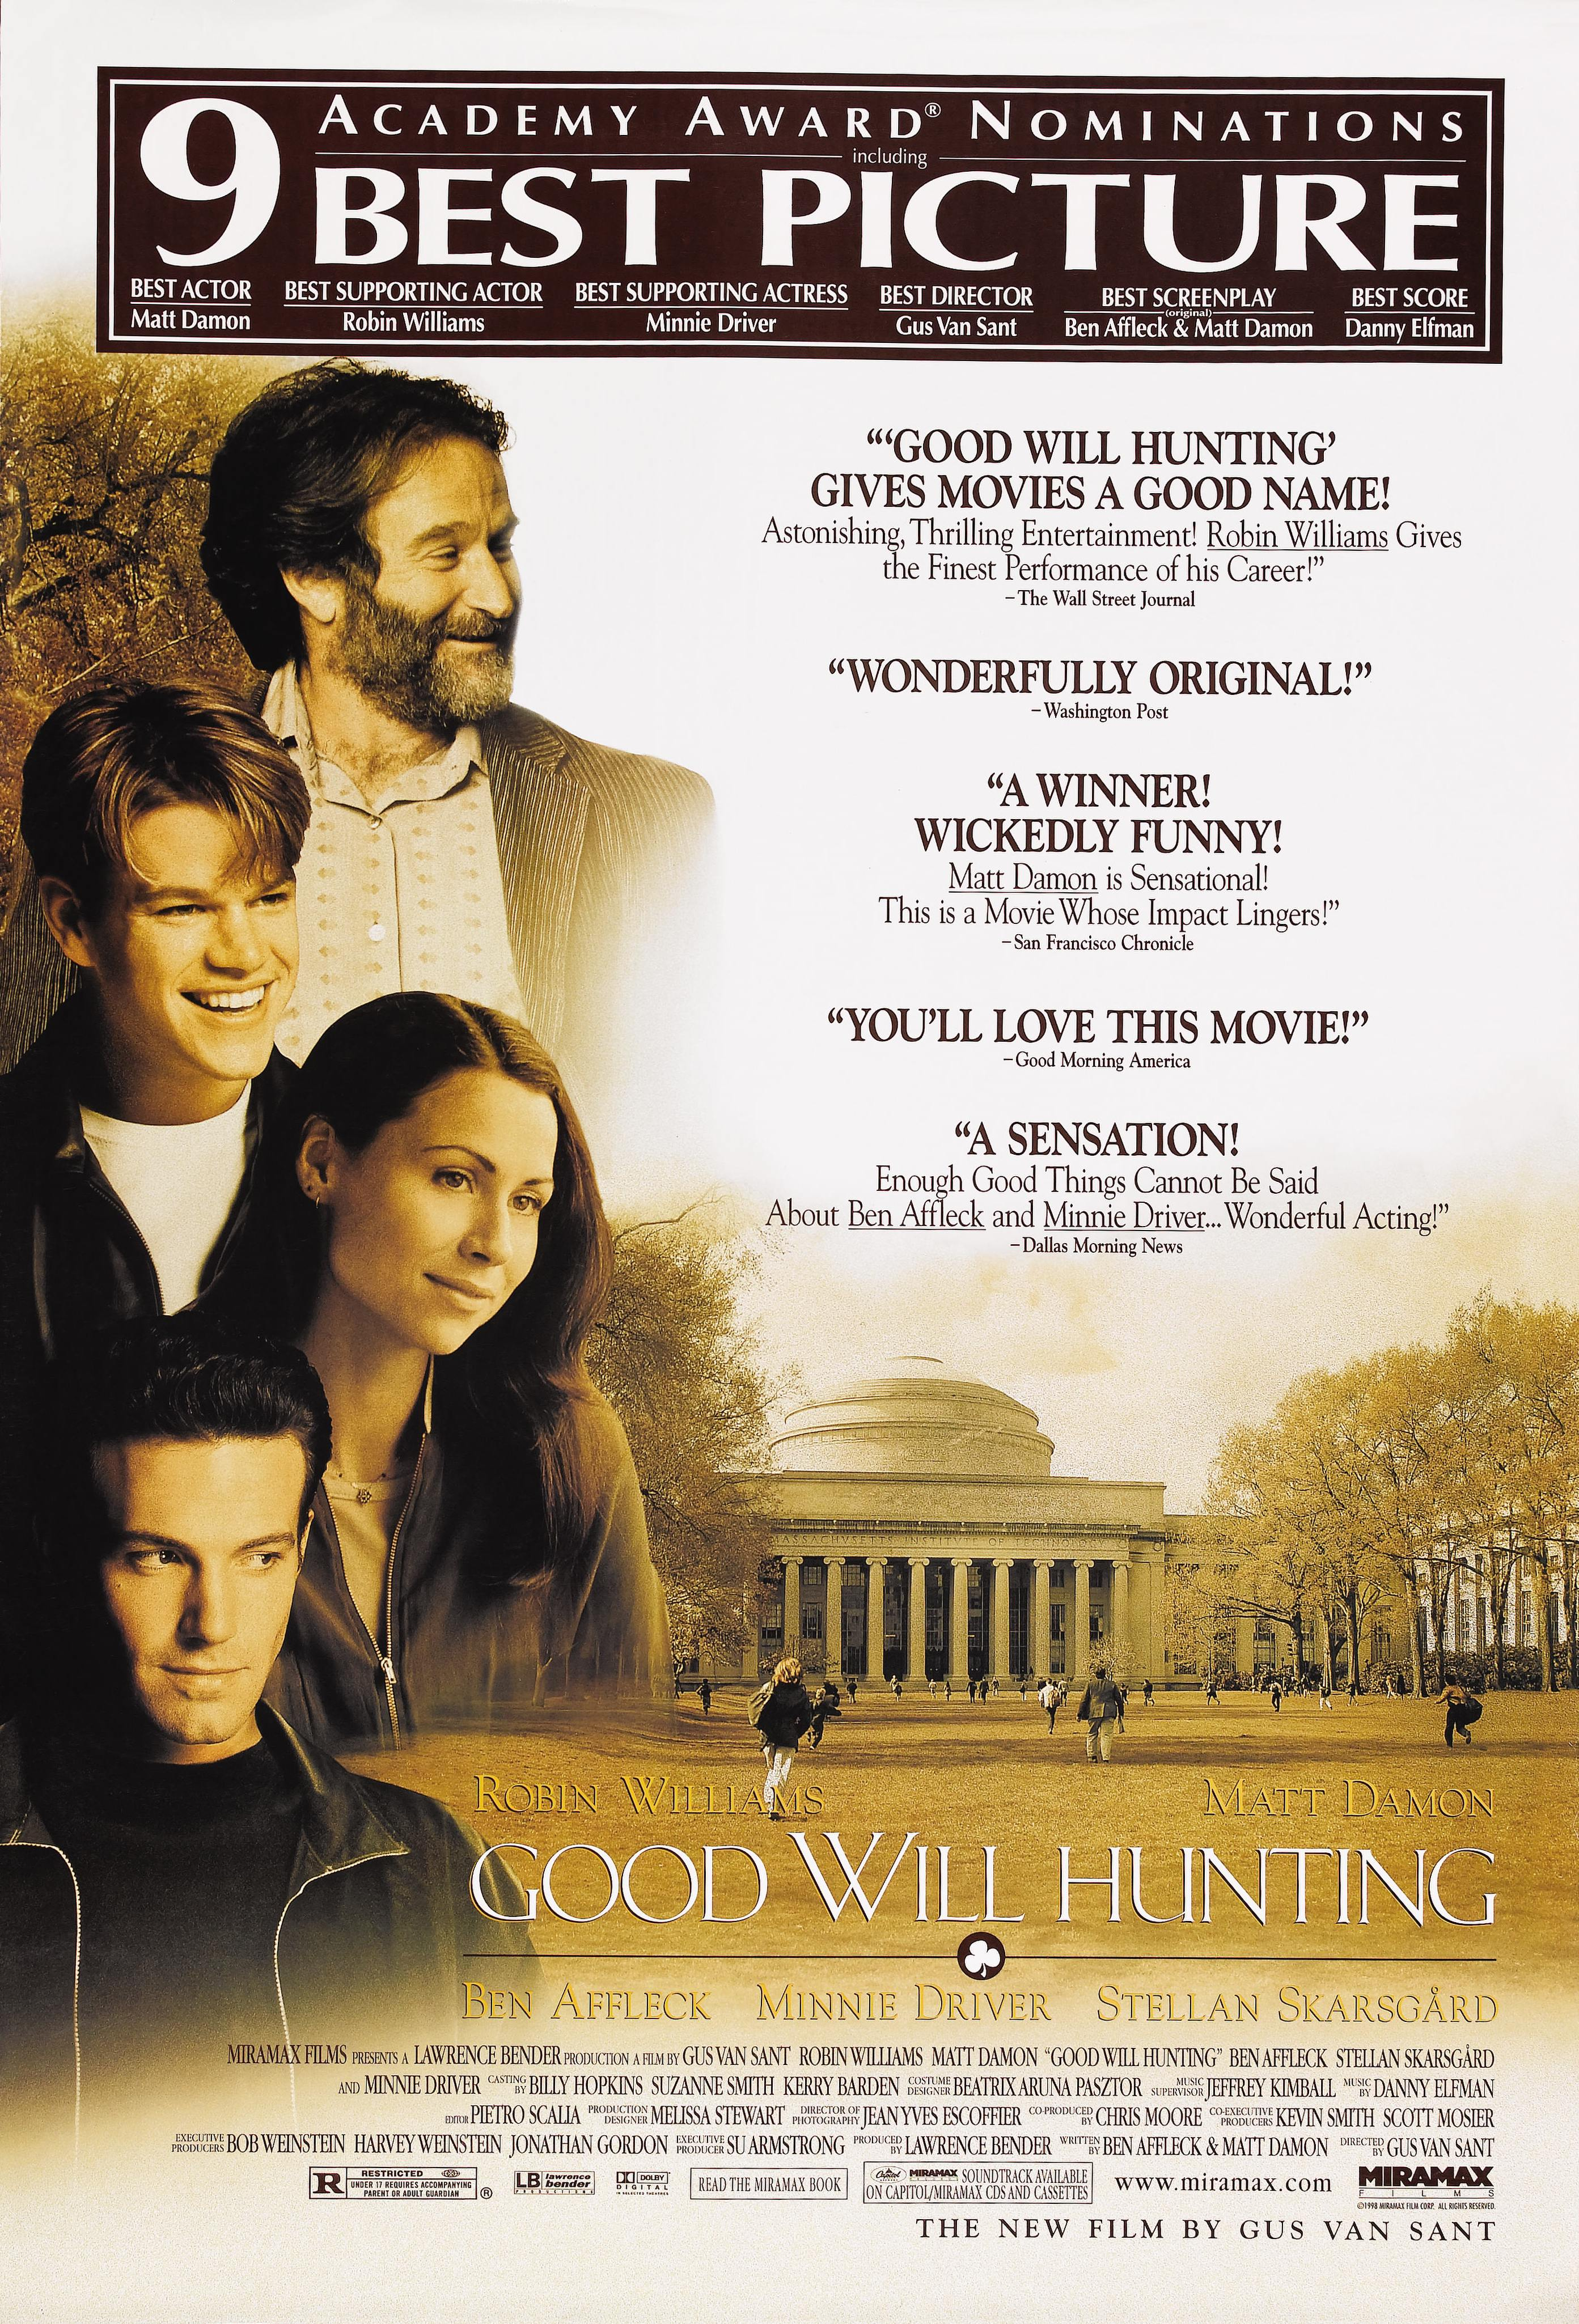 Good Will Hunting Poster 5: Mega Sized Movie Poster Image | GoldPoster